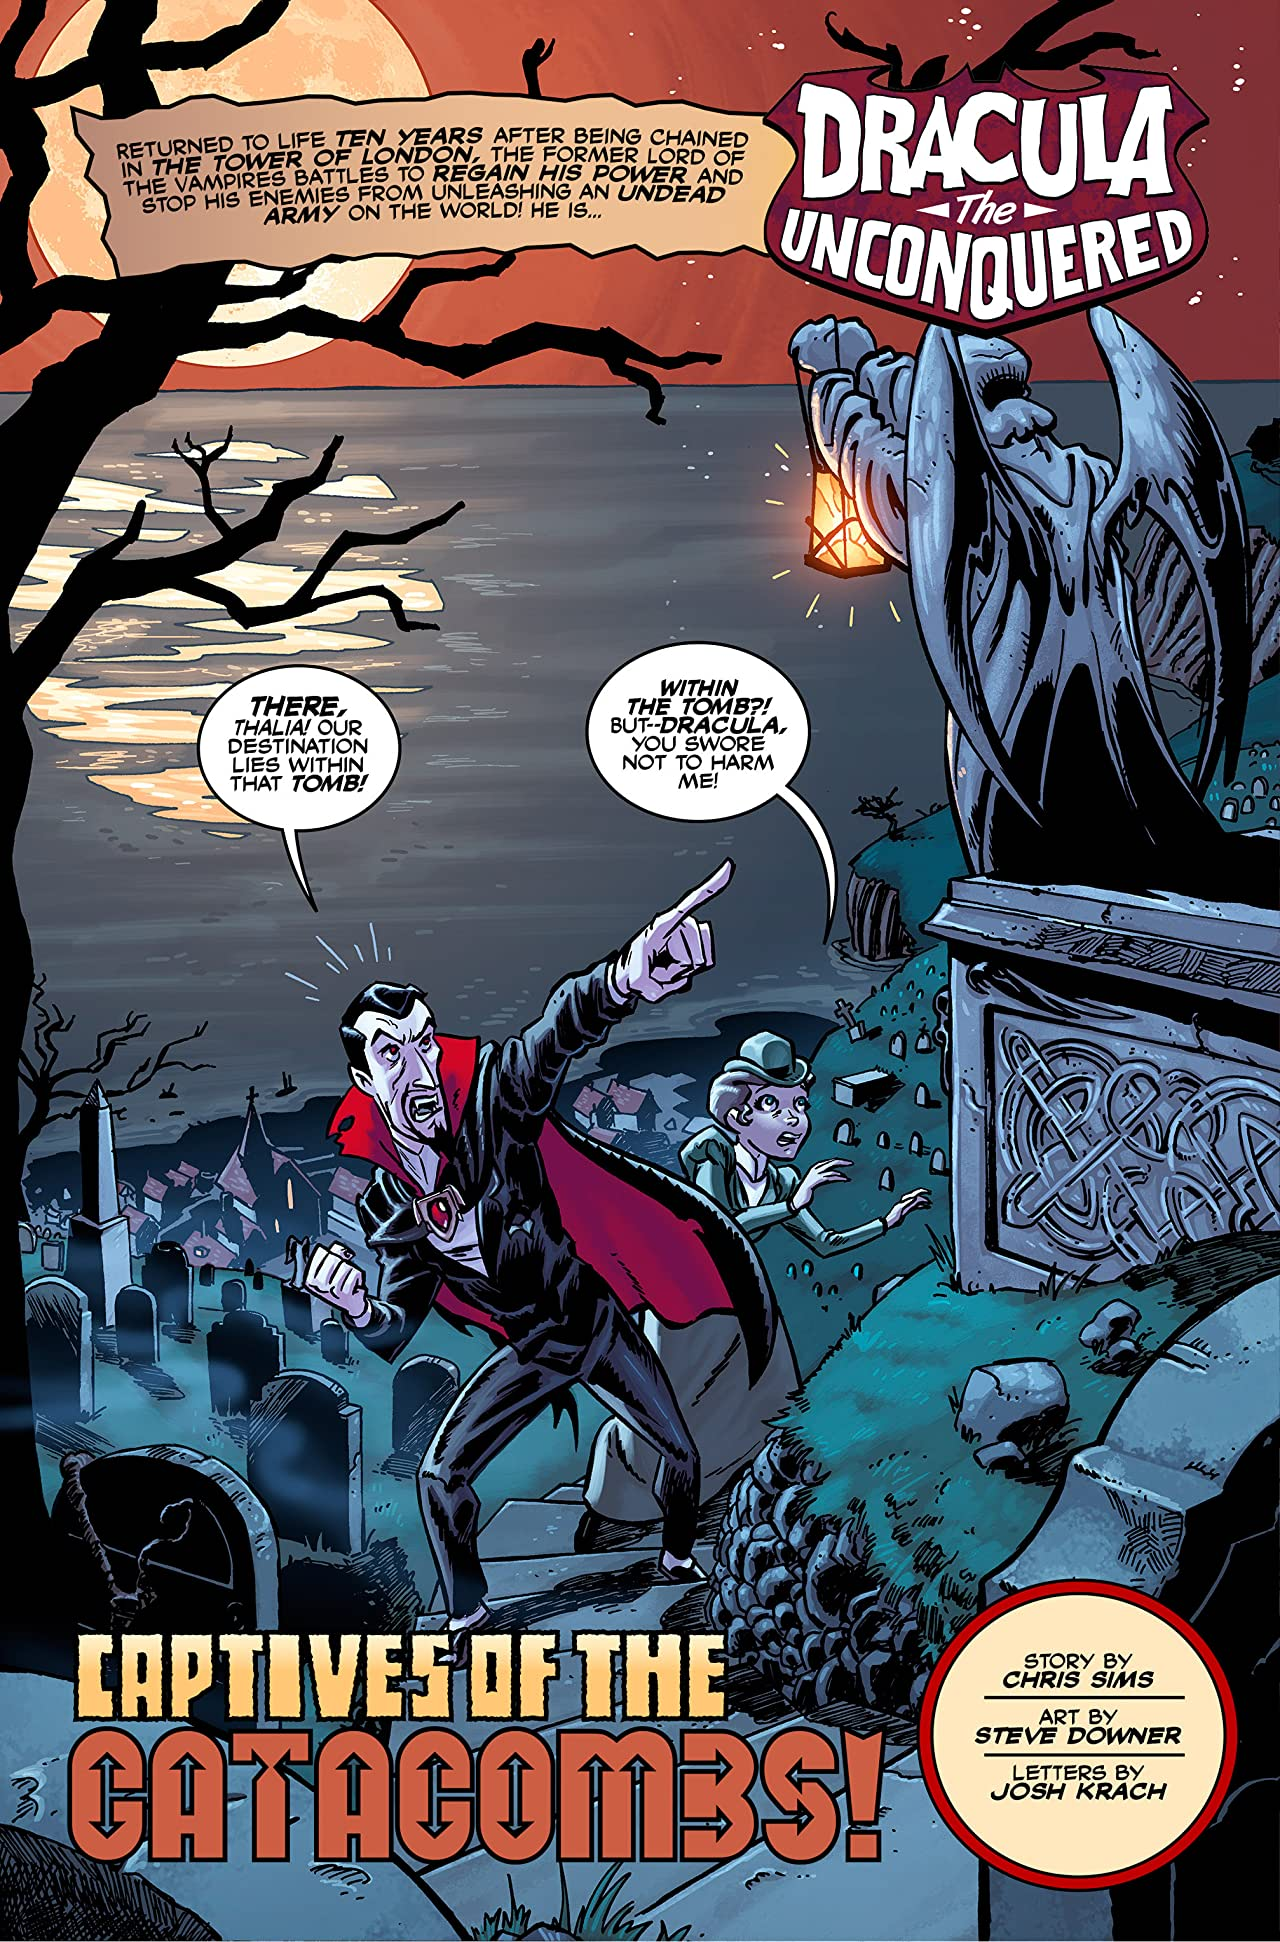 Dracula the Unconquered #2